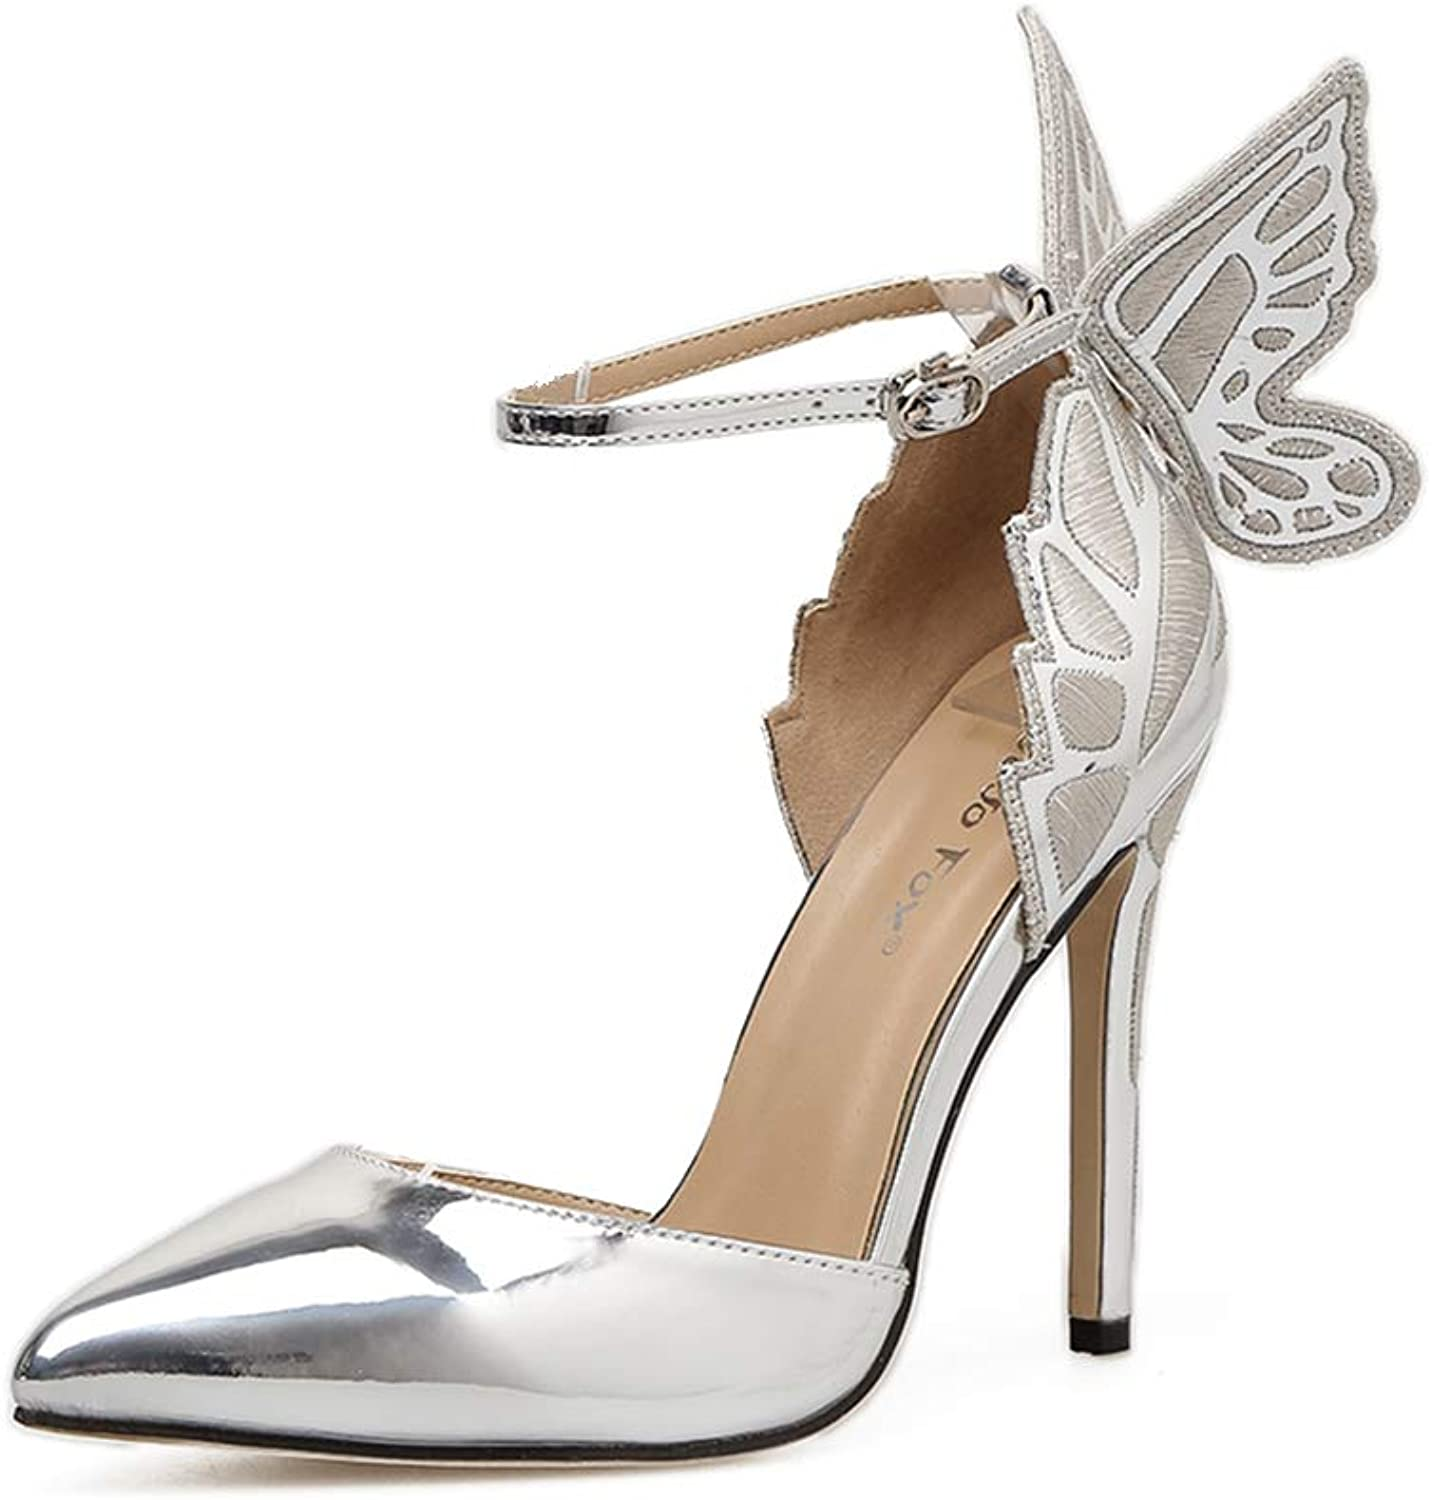 Womens High Heels Pointed Toe Slip on Stilettos Party Wedding Dress Pumps Basic shoes,Silver,40